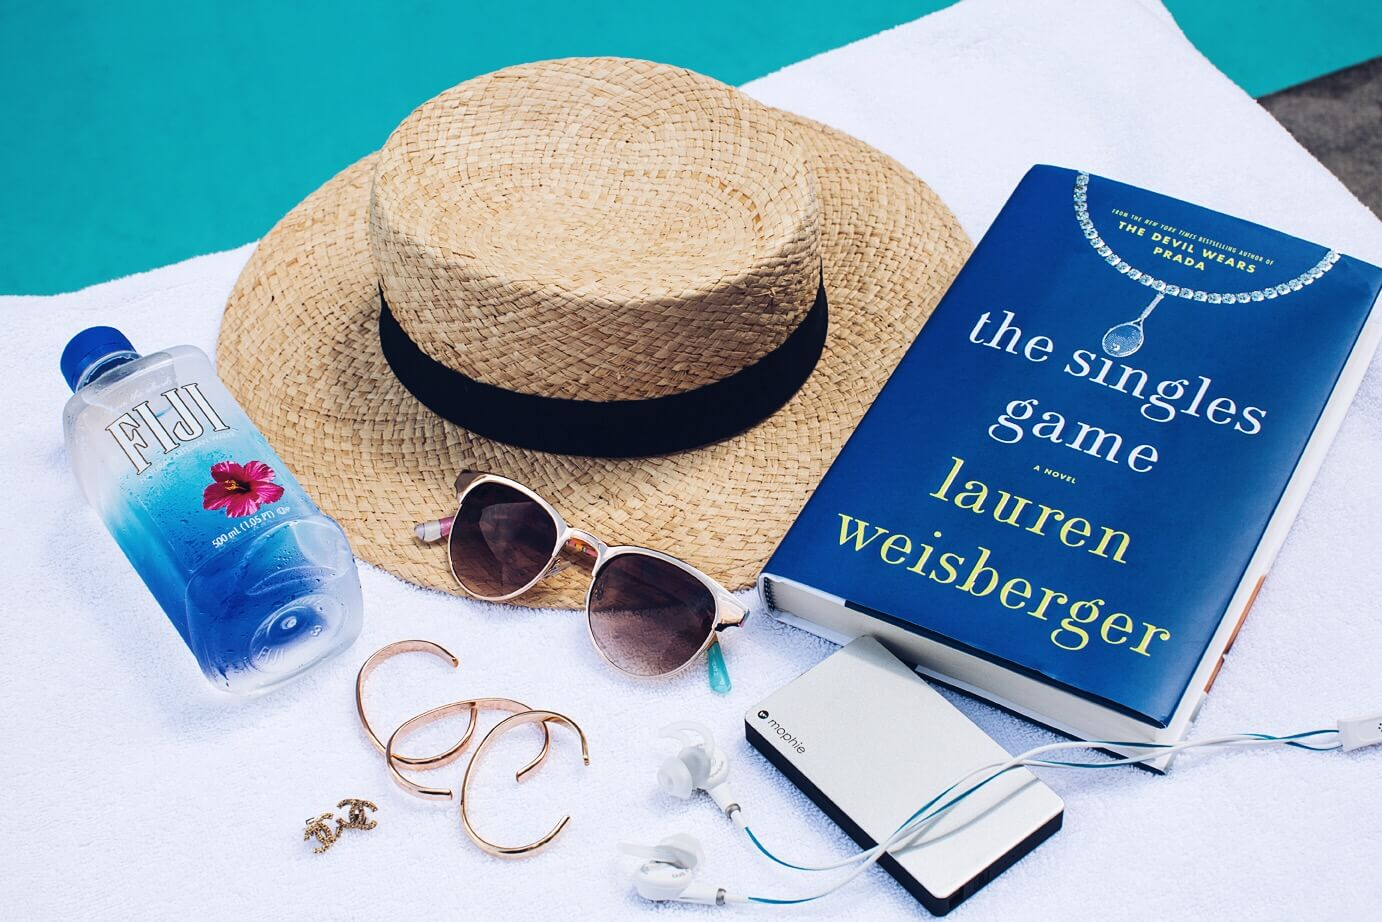 My Pool Side Beauty Survival Kit includes headphones, a cute hat, and sunglasses.